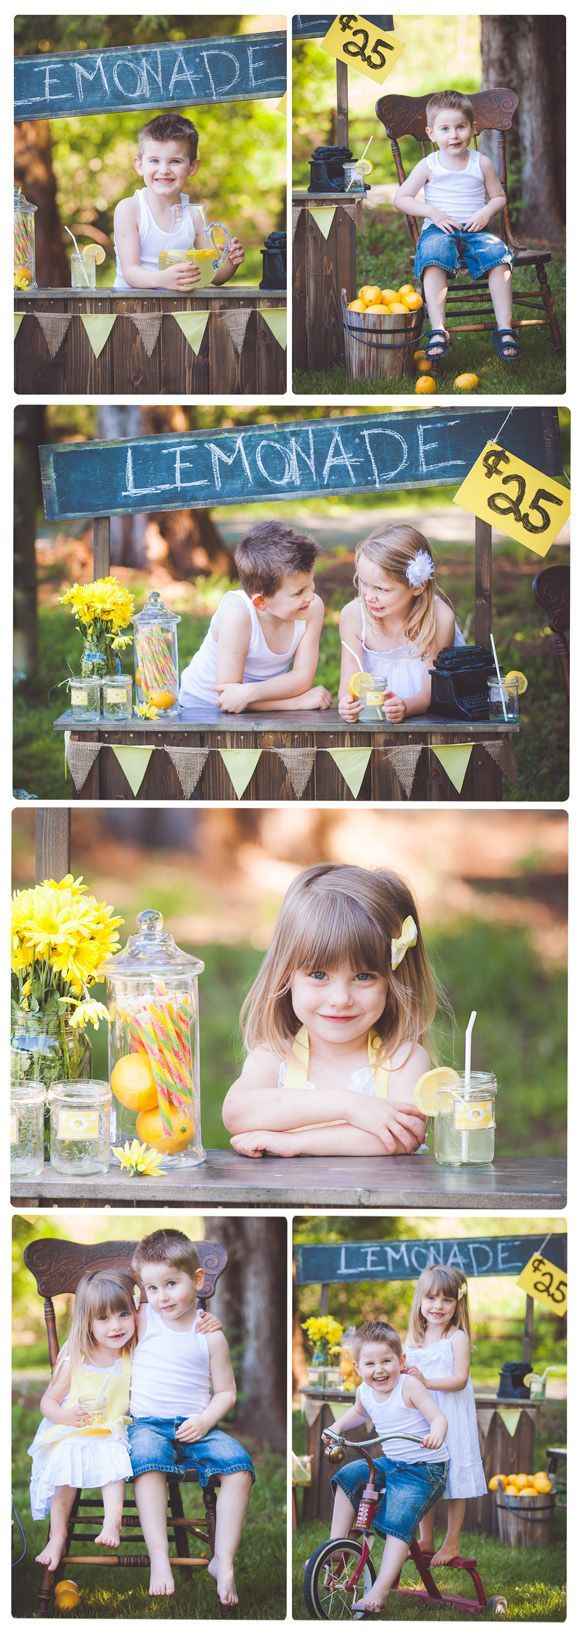 ©️lisamariephotography.ca 2013 | Lemonade Stand Photo Session Ideas | Props | Prop | Child Photography | Clothing Inspiration| Fashion | Pose Idea | Poses |